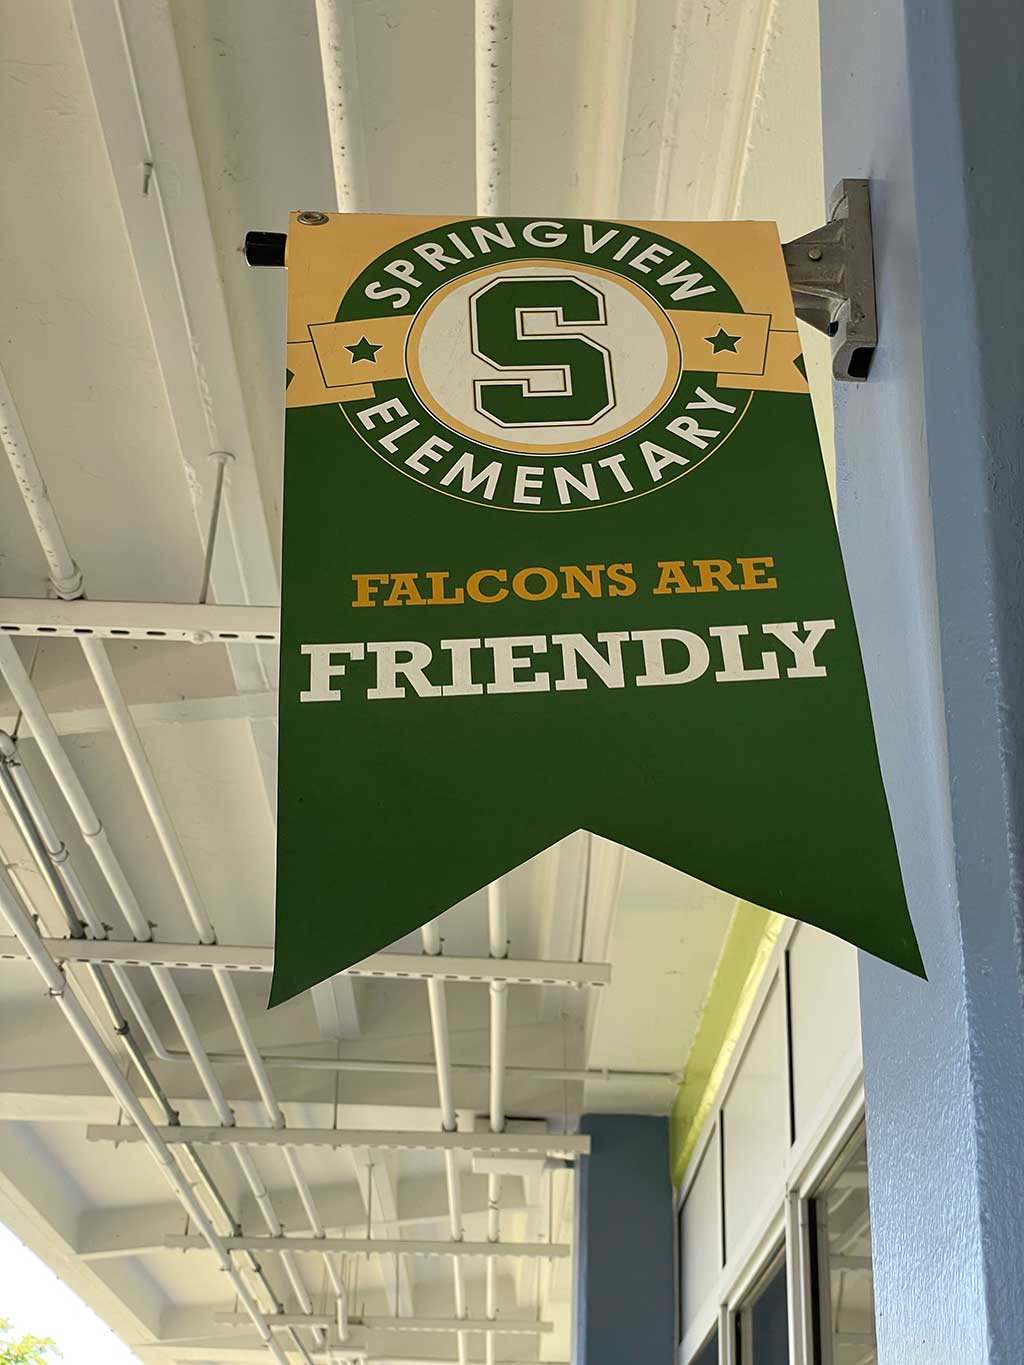 Springview Elementary: Falcons are Friendly